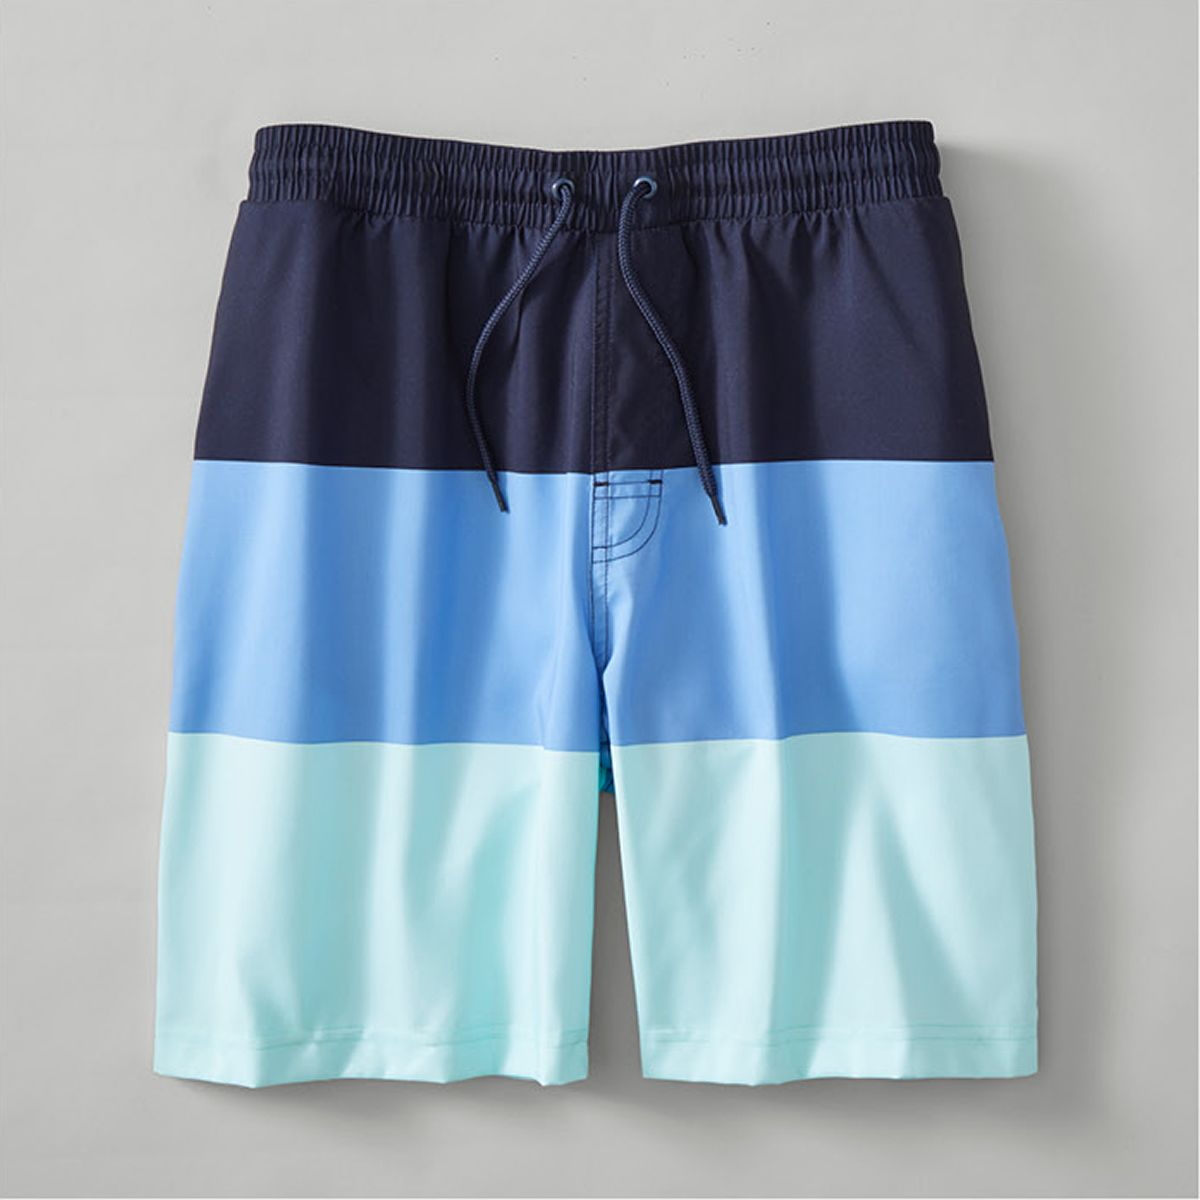 1a836caddff85 Swim Trunk Mens Swimwear & Men's Swim Trunks - Macy's